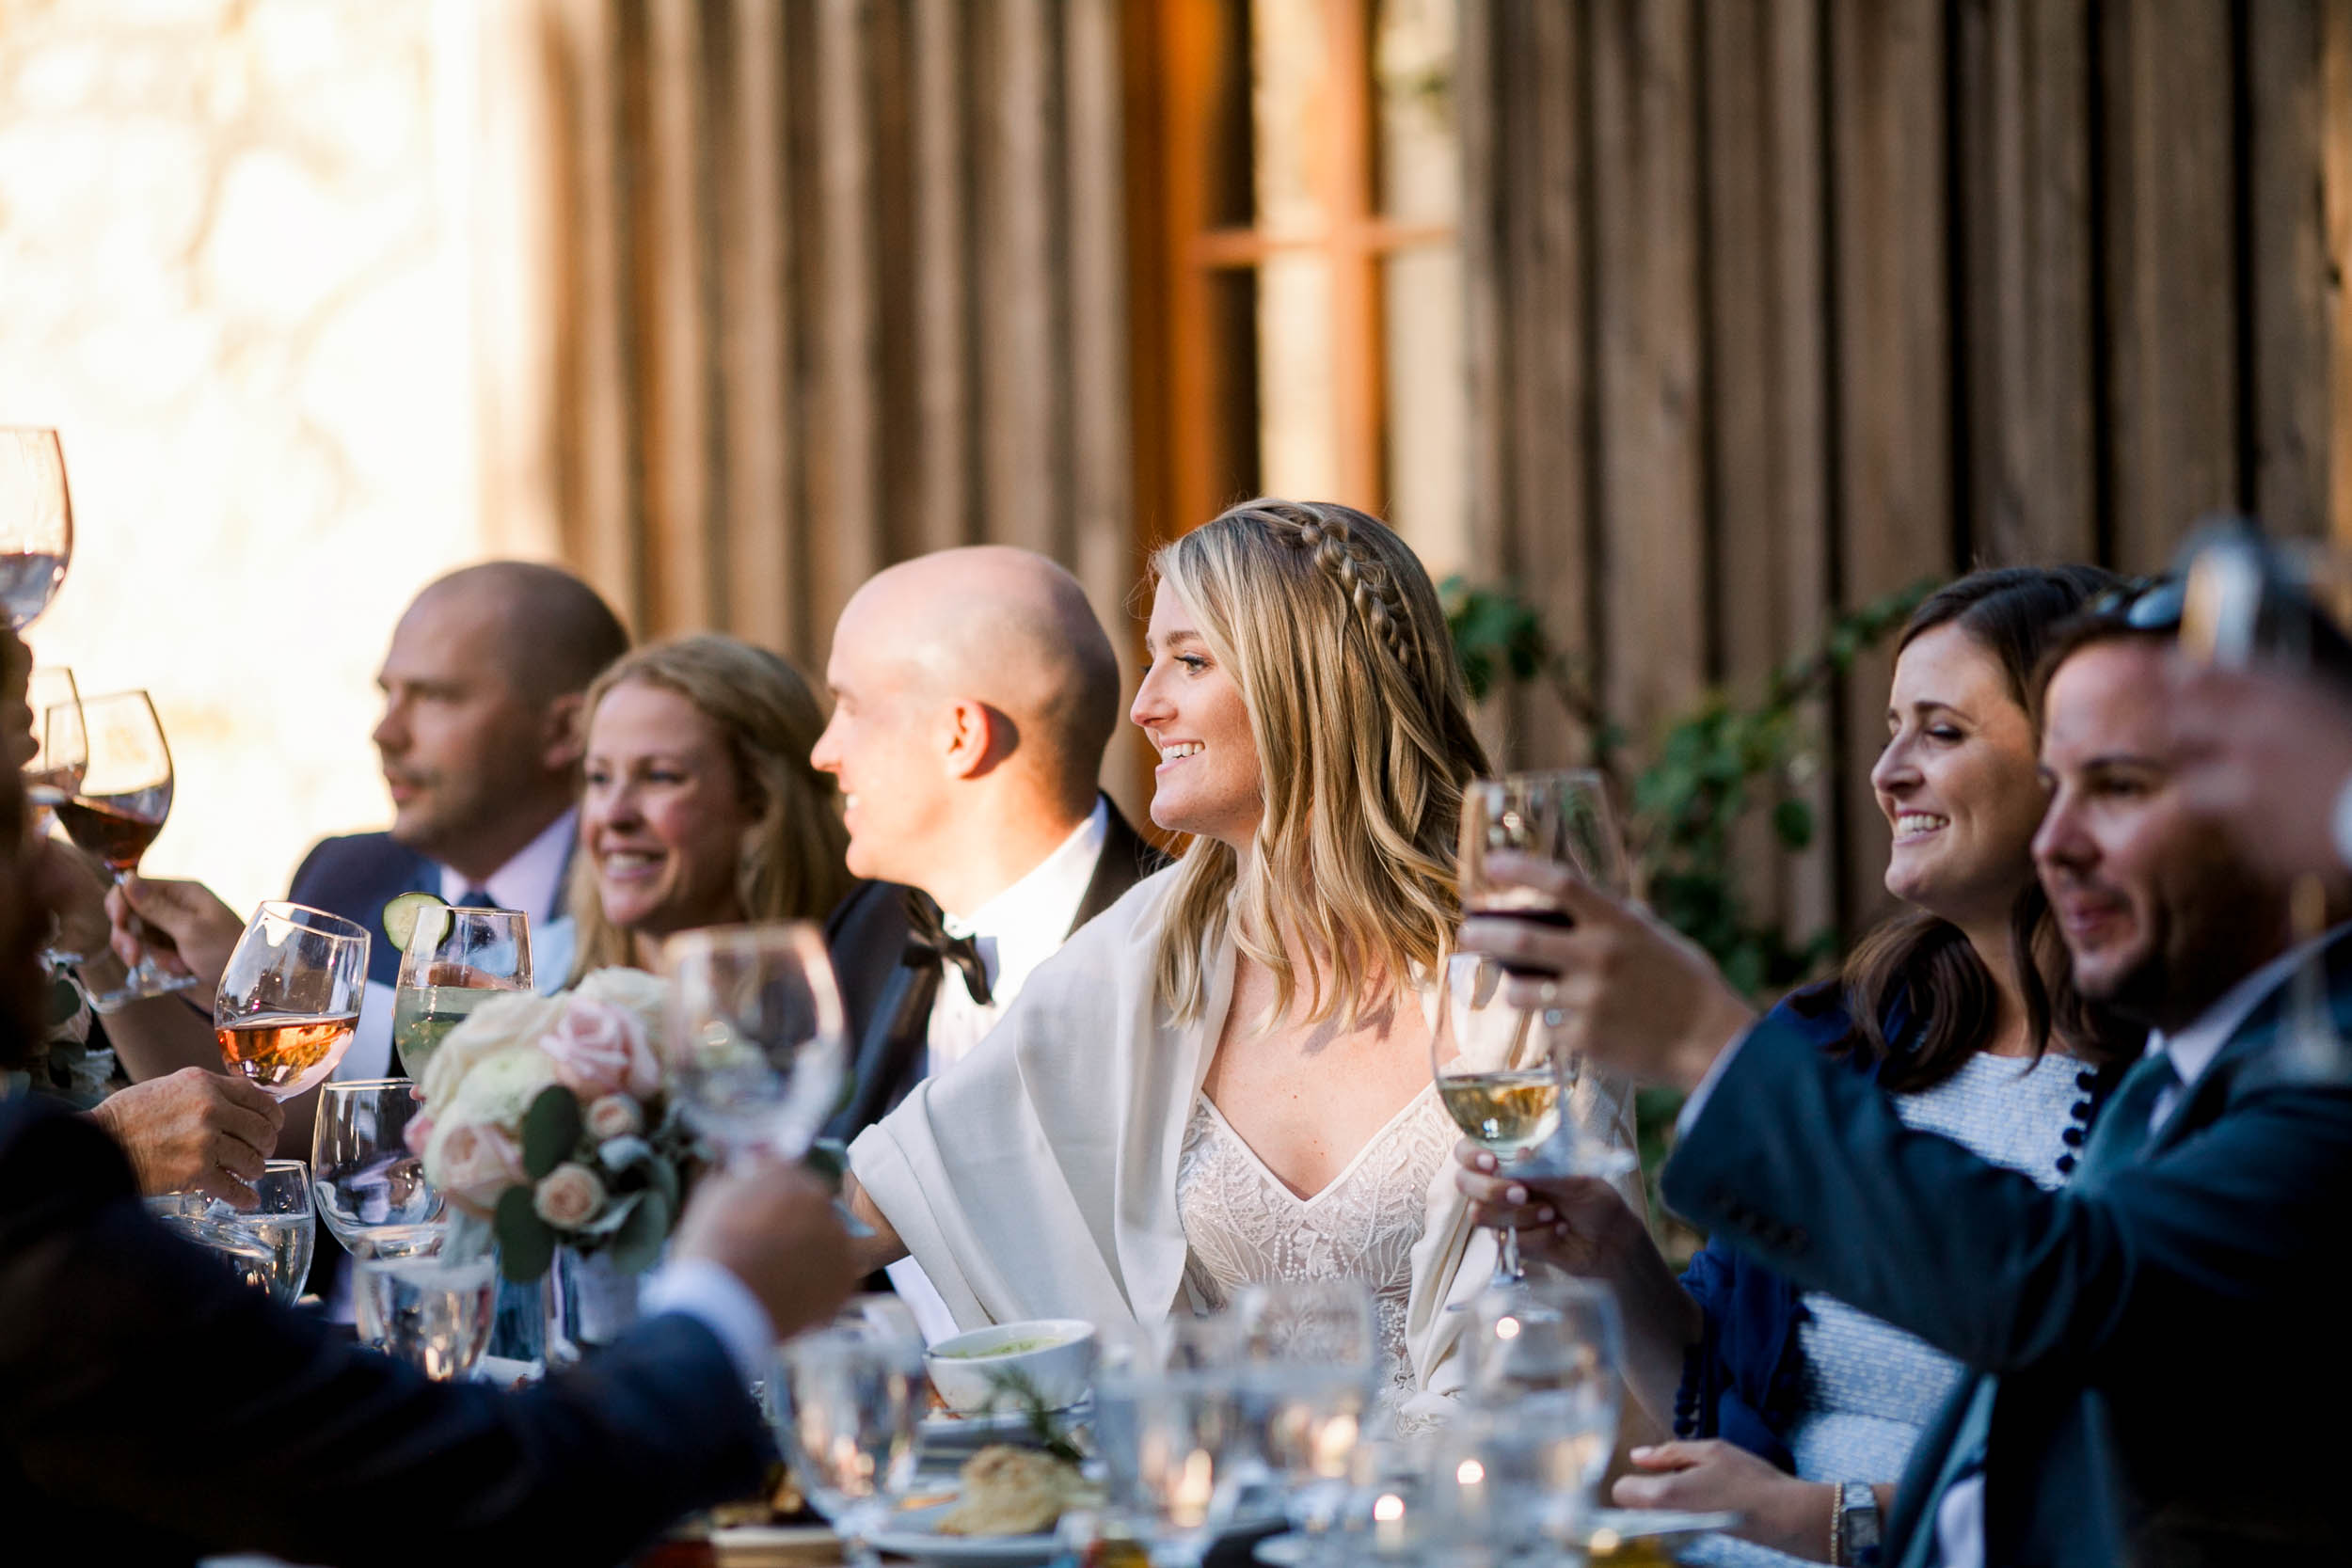 C+D_Holman Ranch Wedding_Carmel Valley_Buena Lane Photography_060619_ER611.jpg